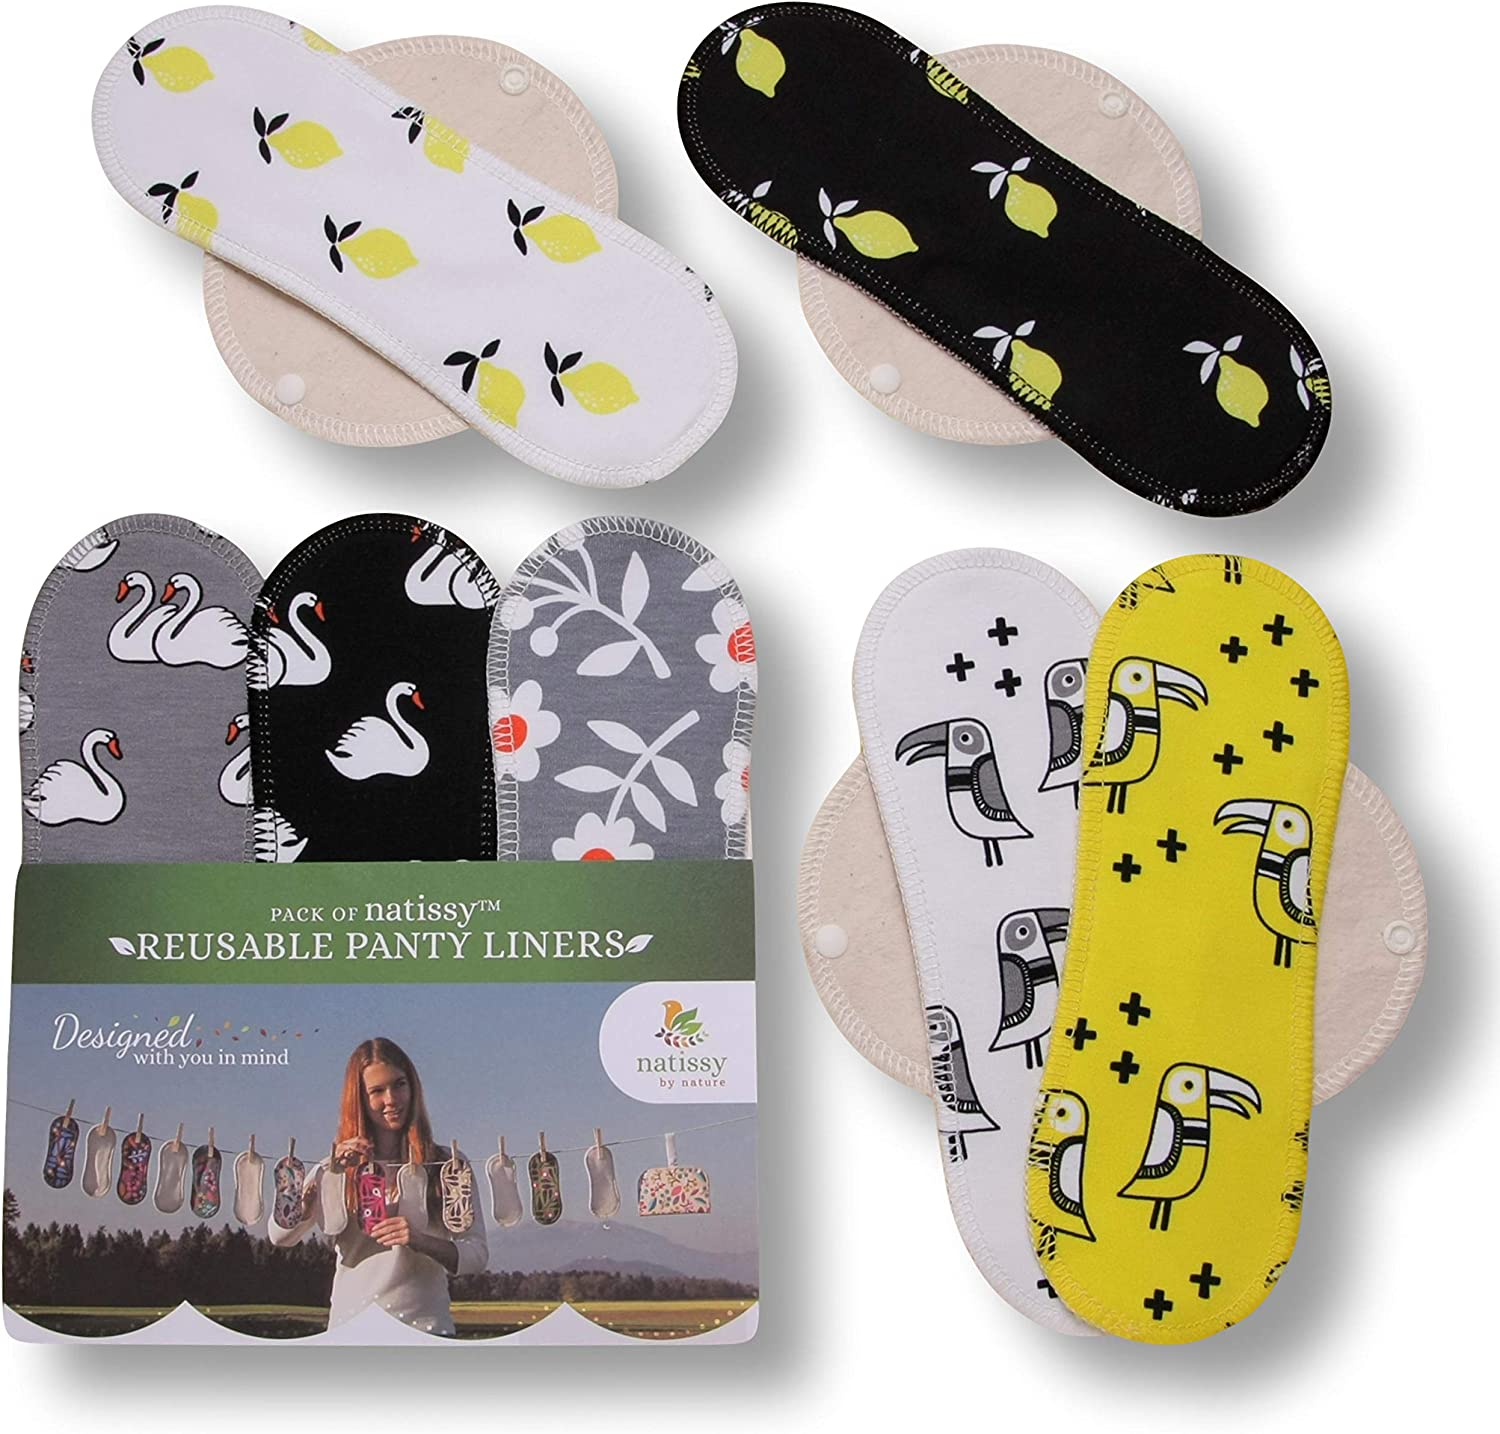 Reusable Panty Liners for Women; online shopping M Medium Cotto Ranking TOP10 Organic 7-Pack